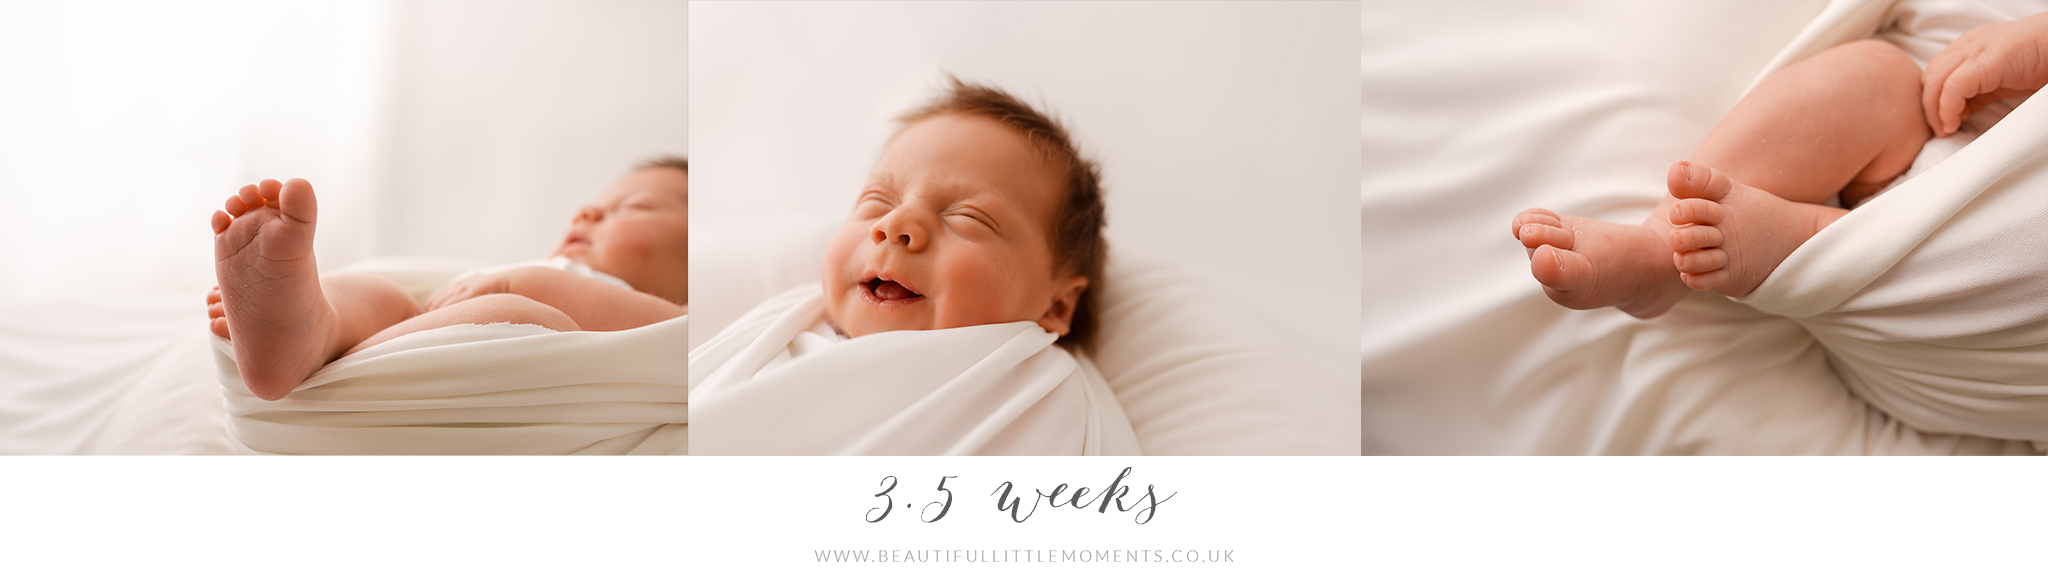 3.5 week old baby photography